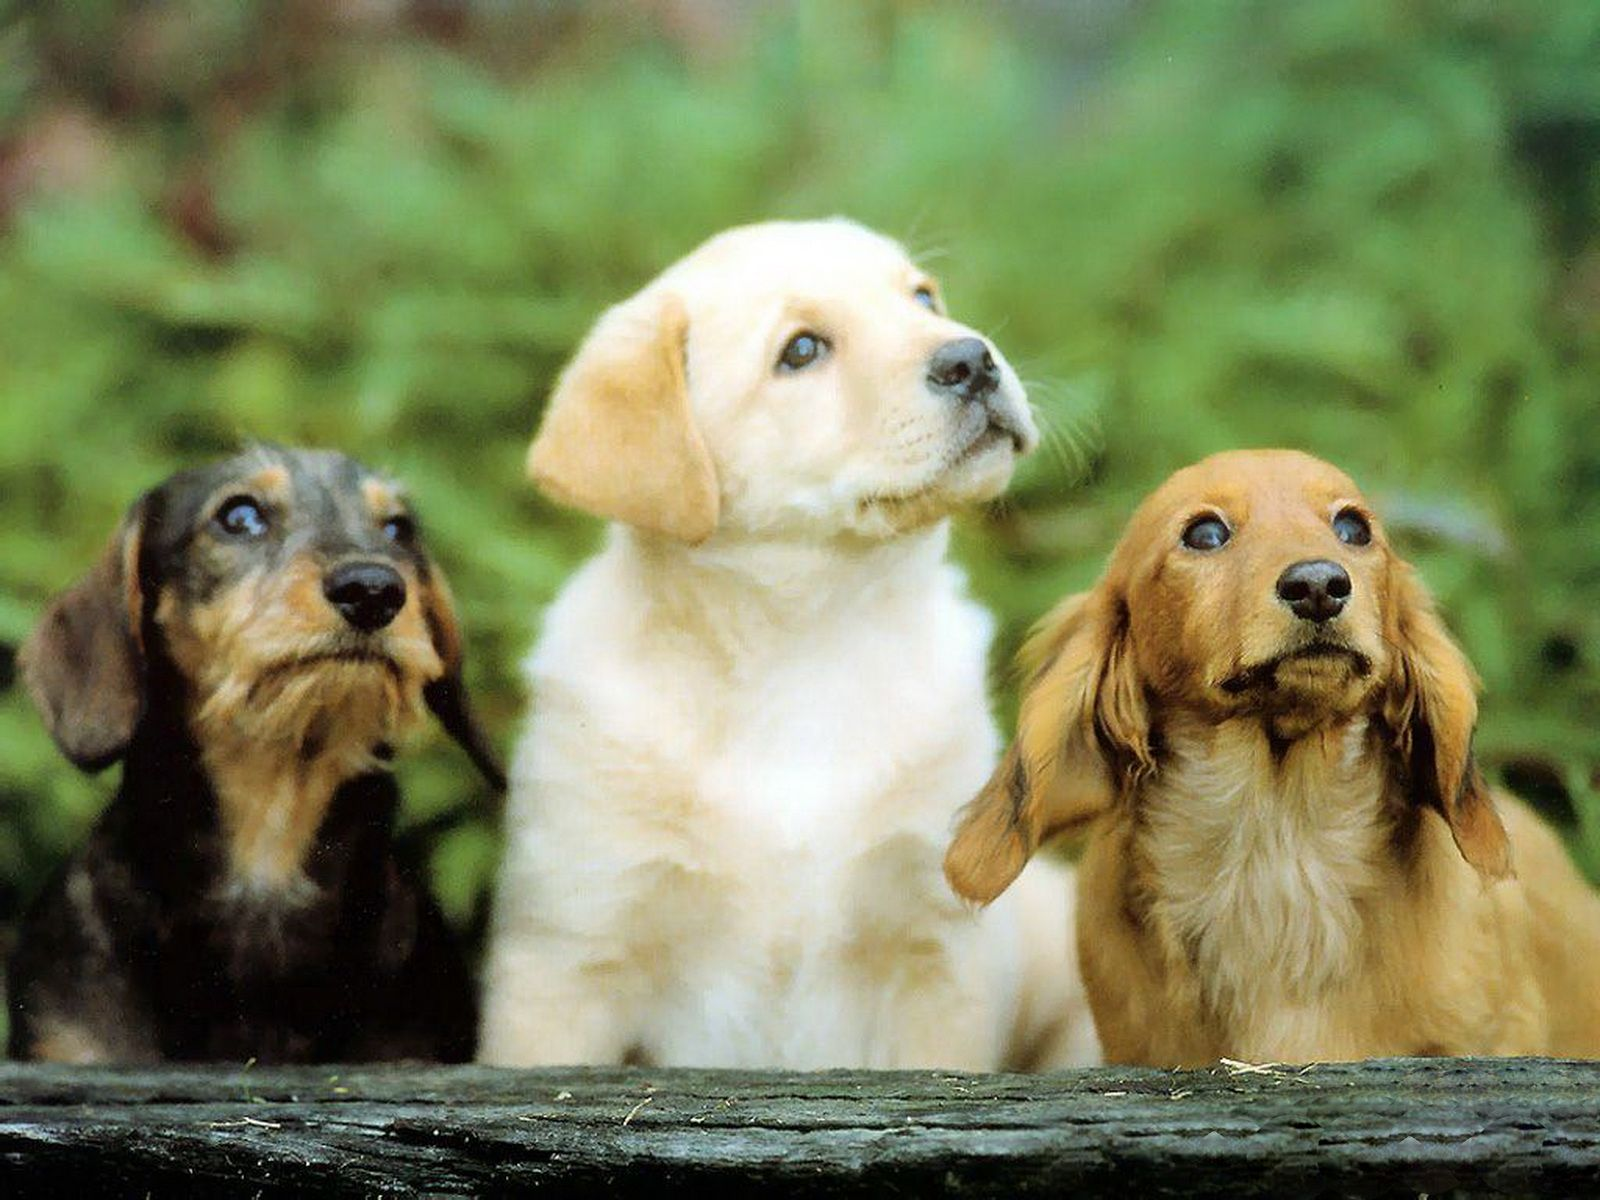 Cute Dog Family